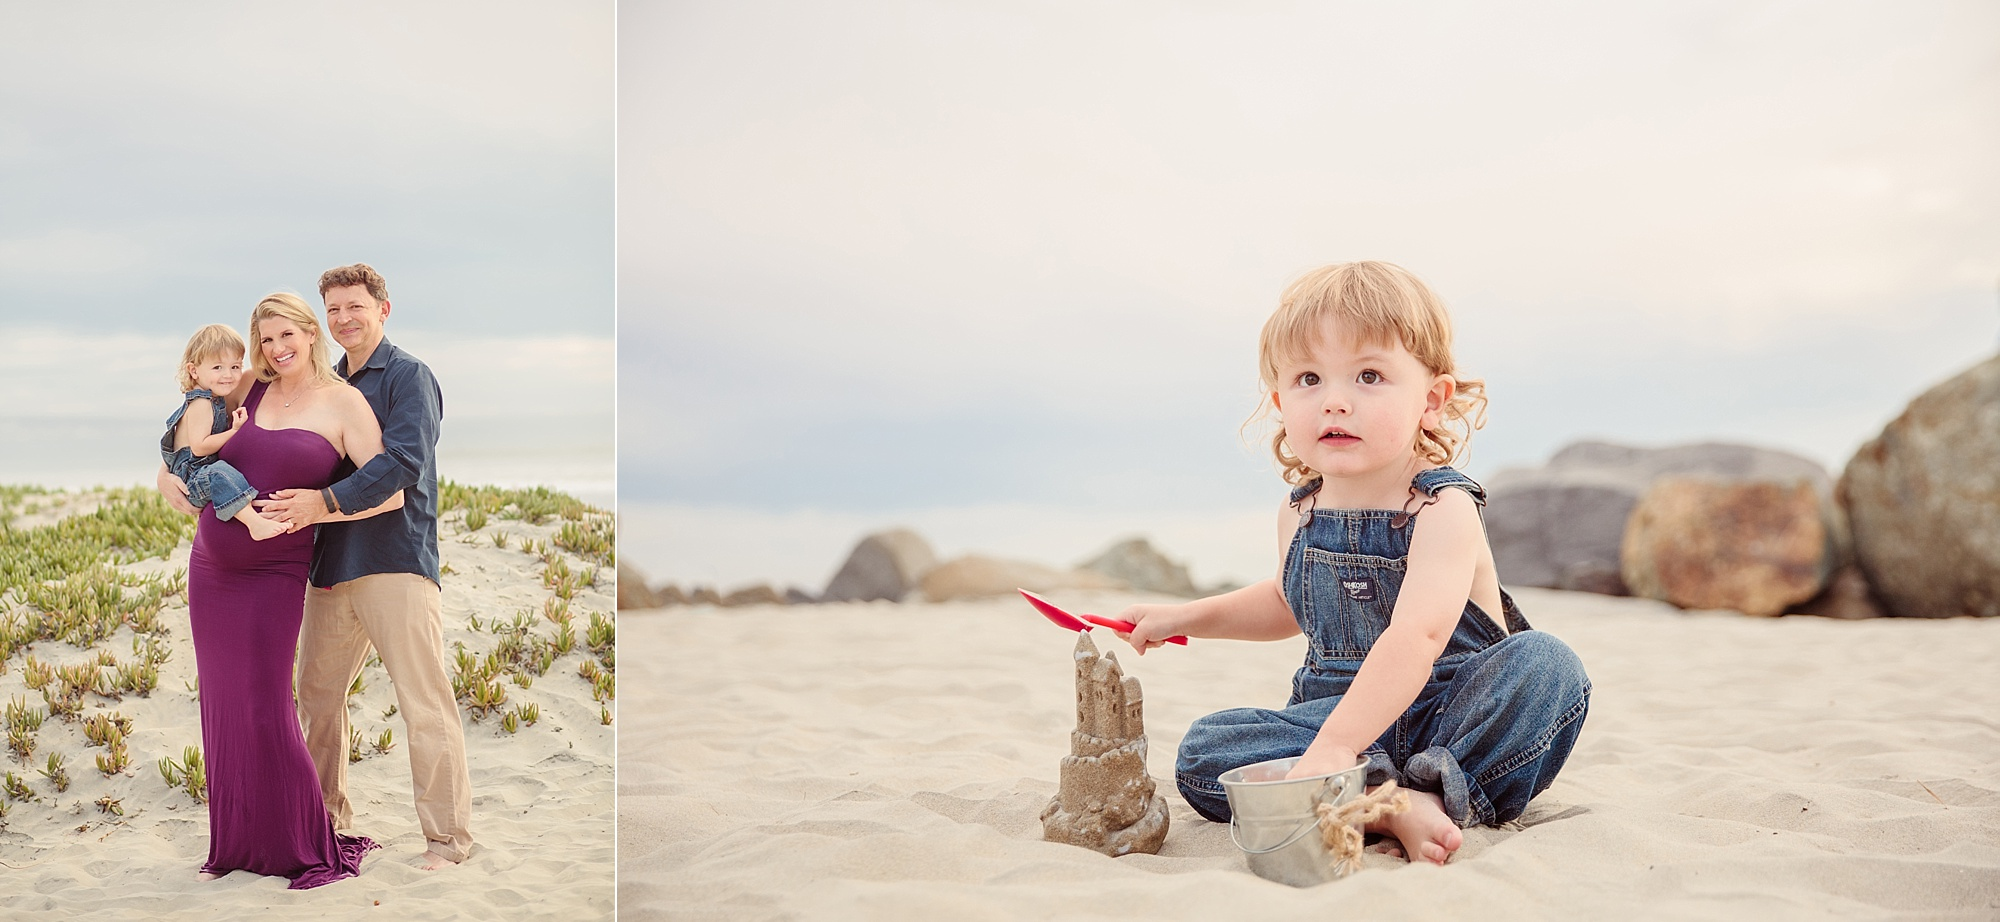 San Diego Photography | Beach Maternity Photos